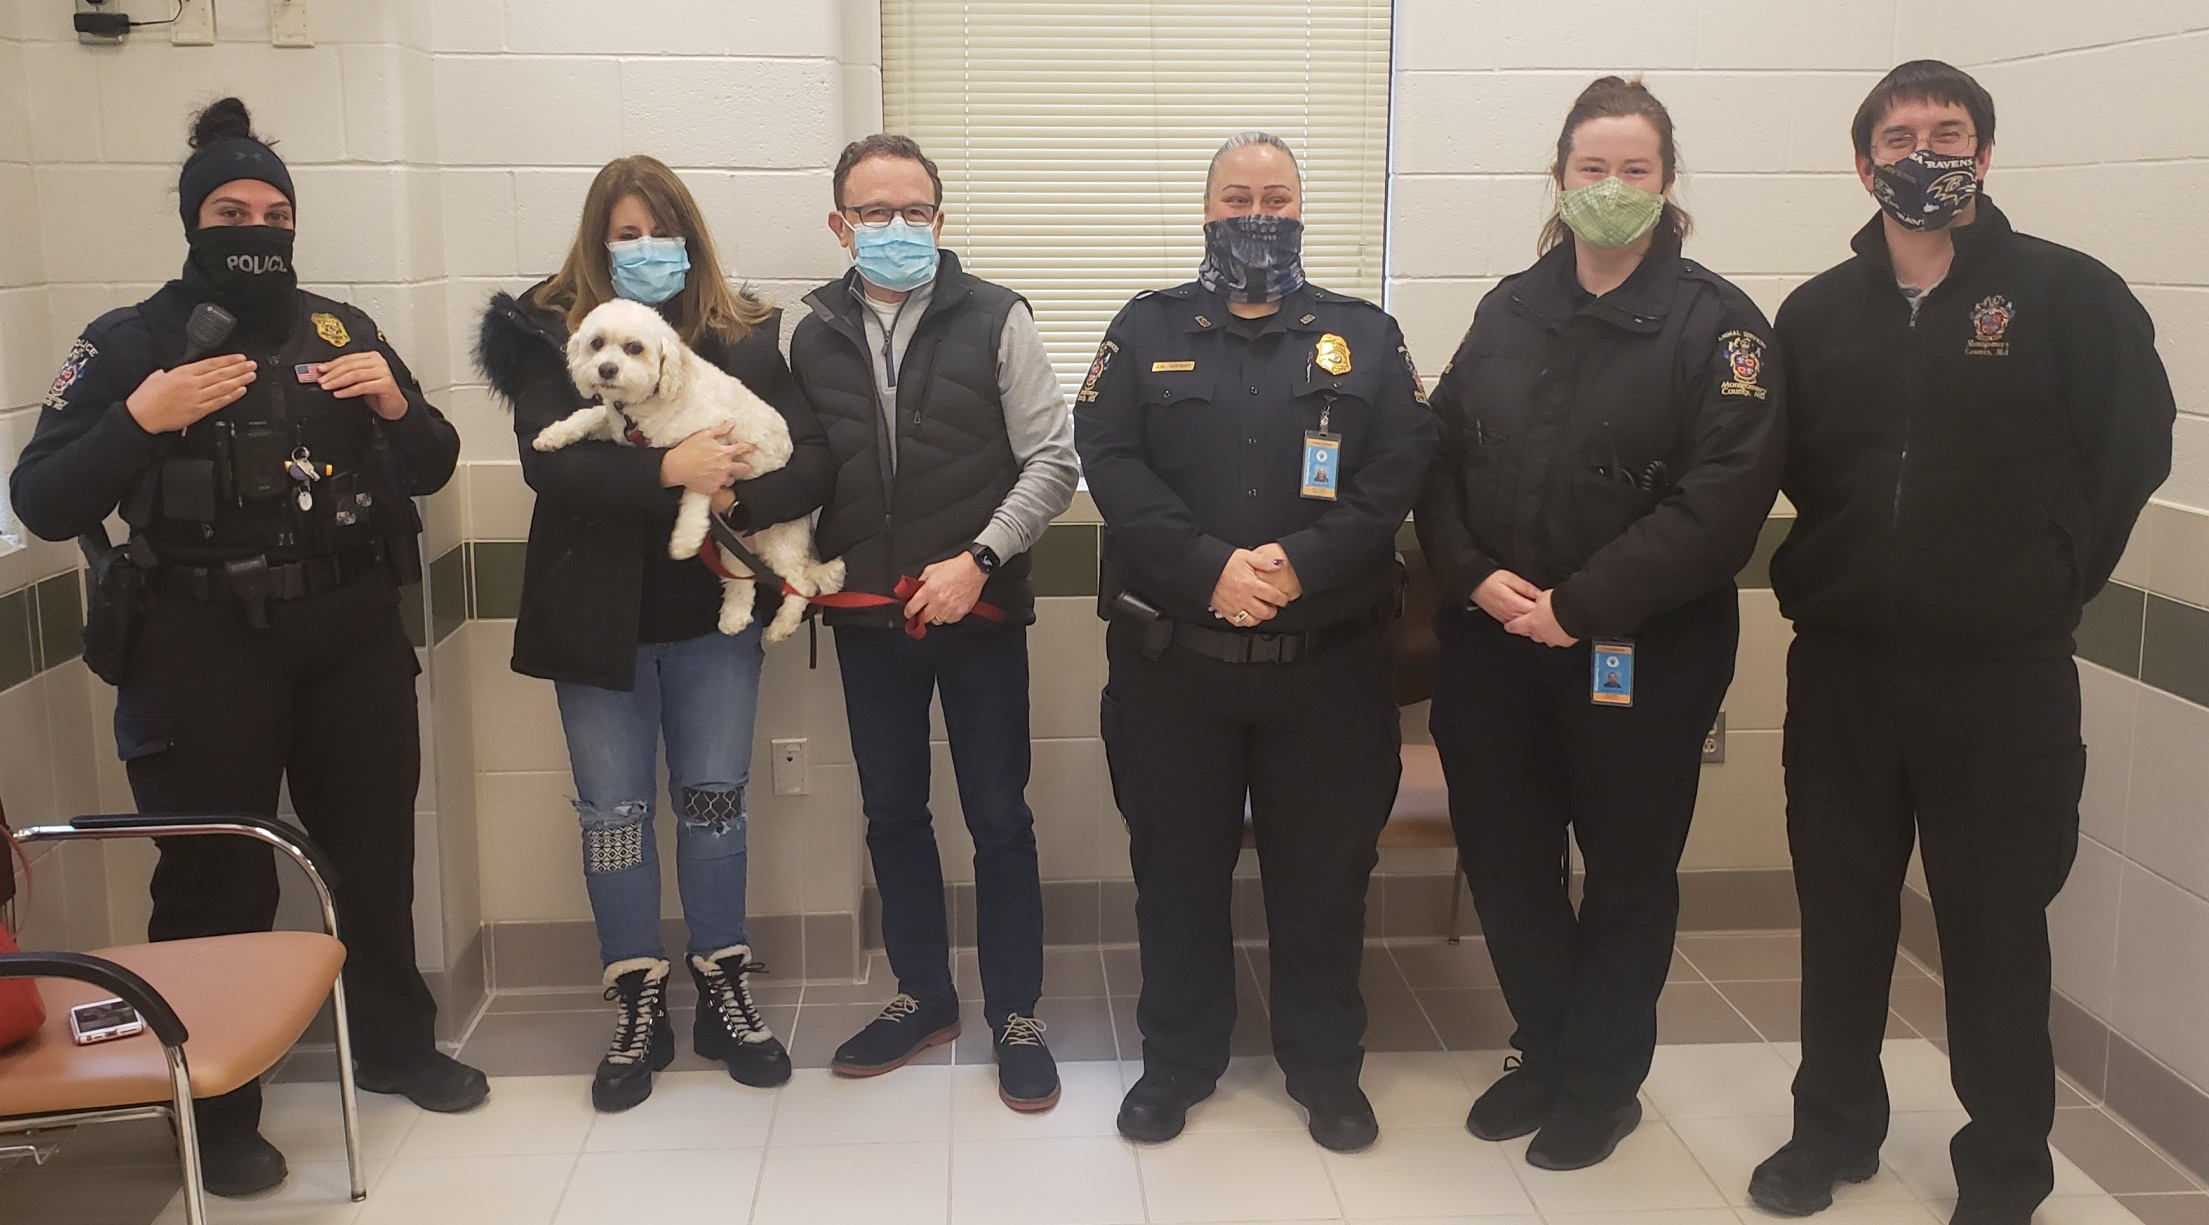 (L to R) Officer C. De Sousa - one of the responding officers to adoption center, Two owners, Animal Services Field Supervisor Jeanette Wright, Animal Services Officer Sarah Ogrin - stalled the suspect until police arrived, Animal Services Customer Service Representative William Eisenbarth - recognized the stolen dog